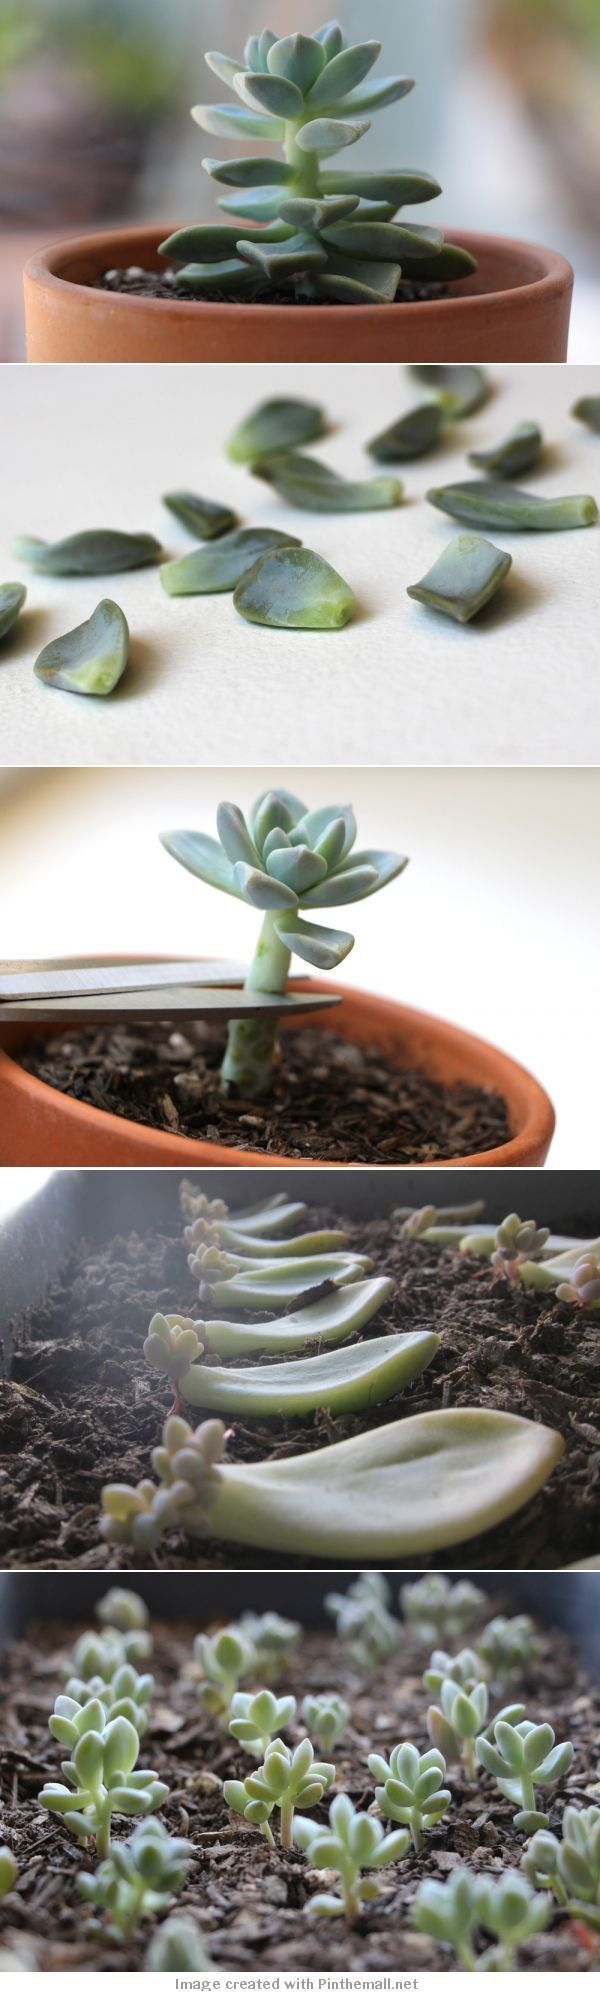 garden and plants - how to propagate succulents from leaves by estela